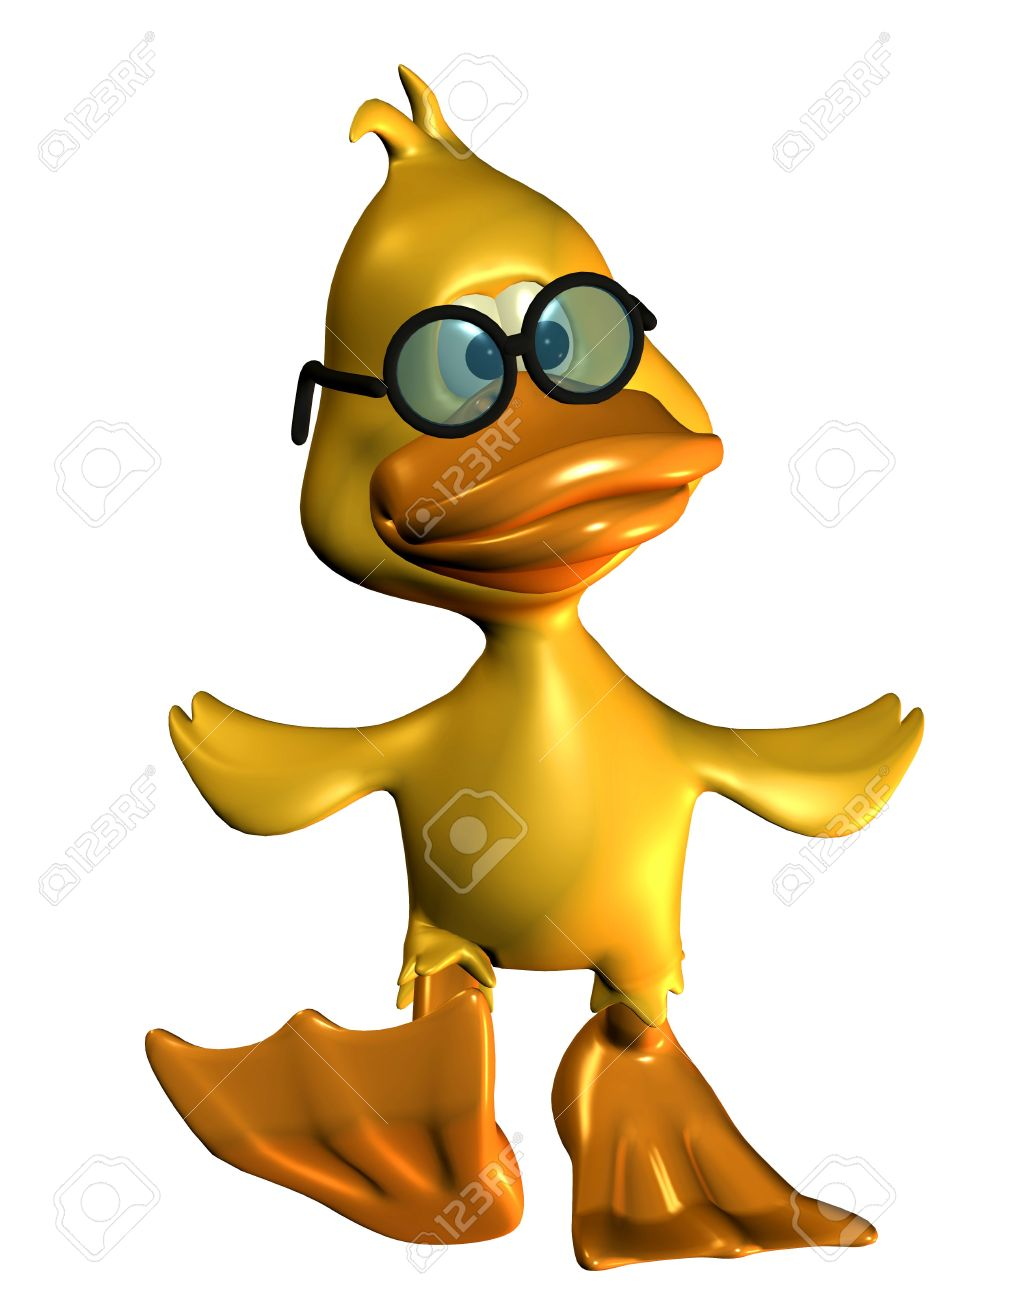 3D Rendering Of A Duck Waddling In Comic Style Stock Photo.